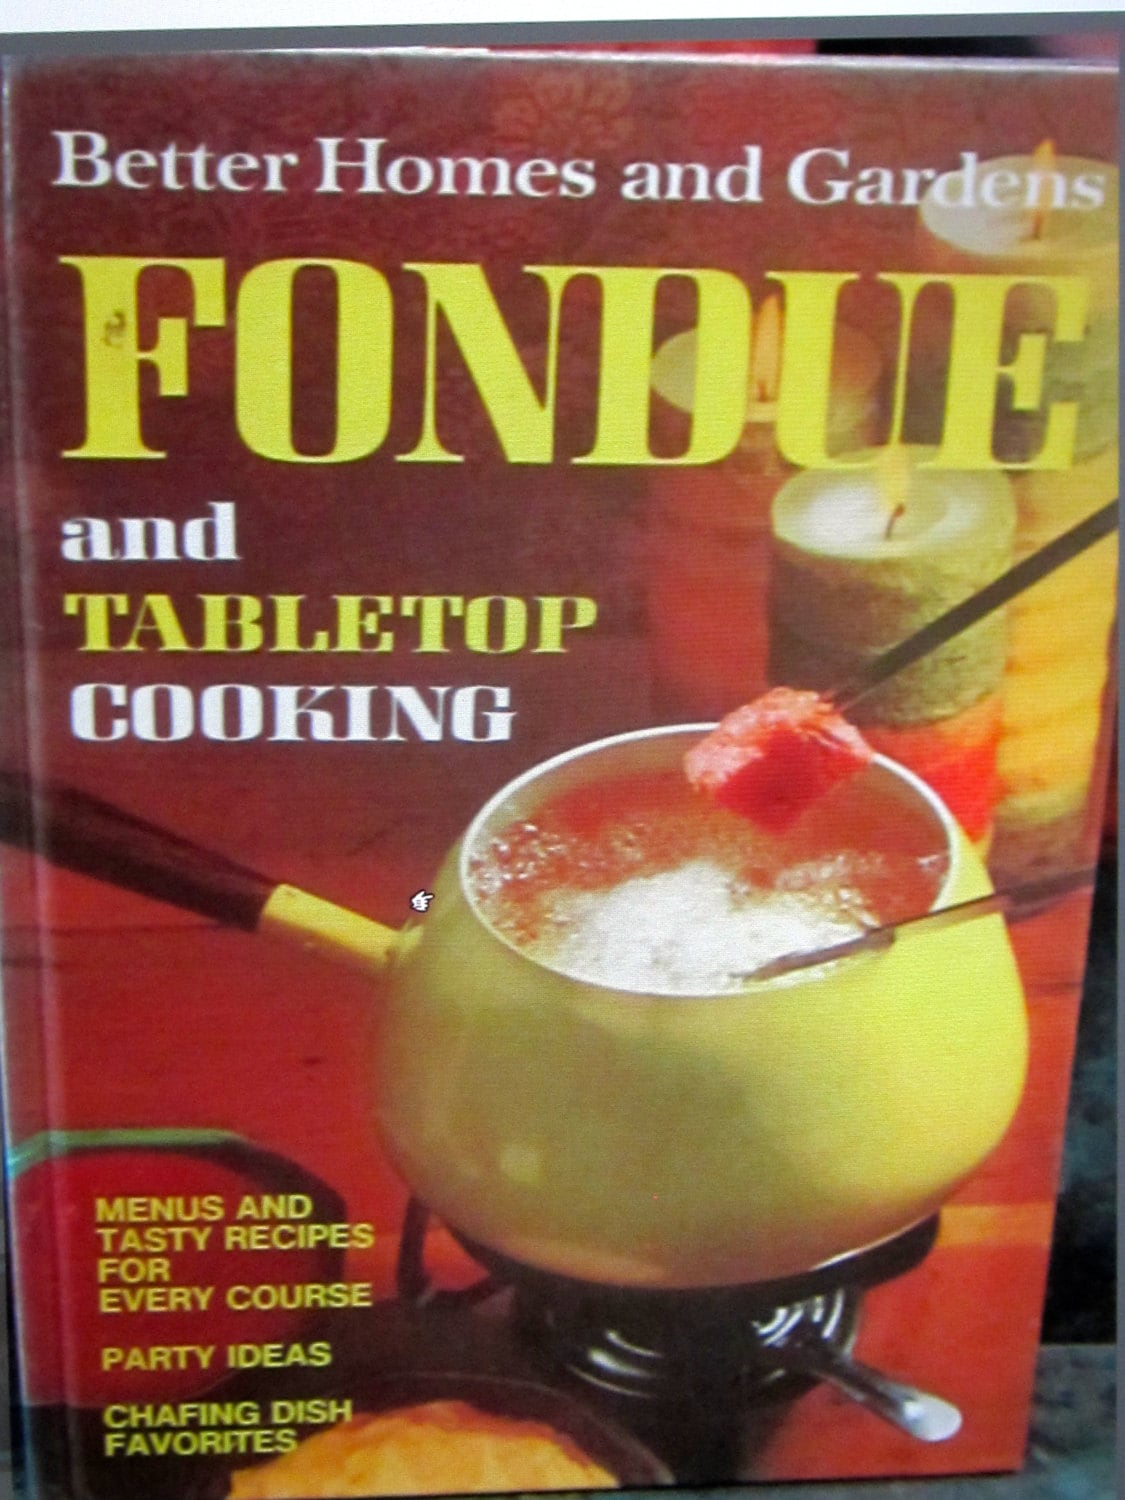 Fondue Cookbook Better Homes And Gardens First Edition 1972